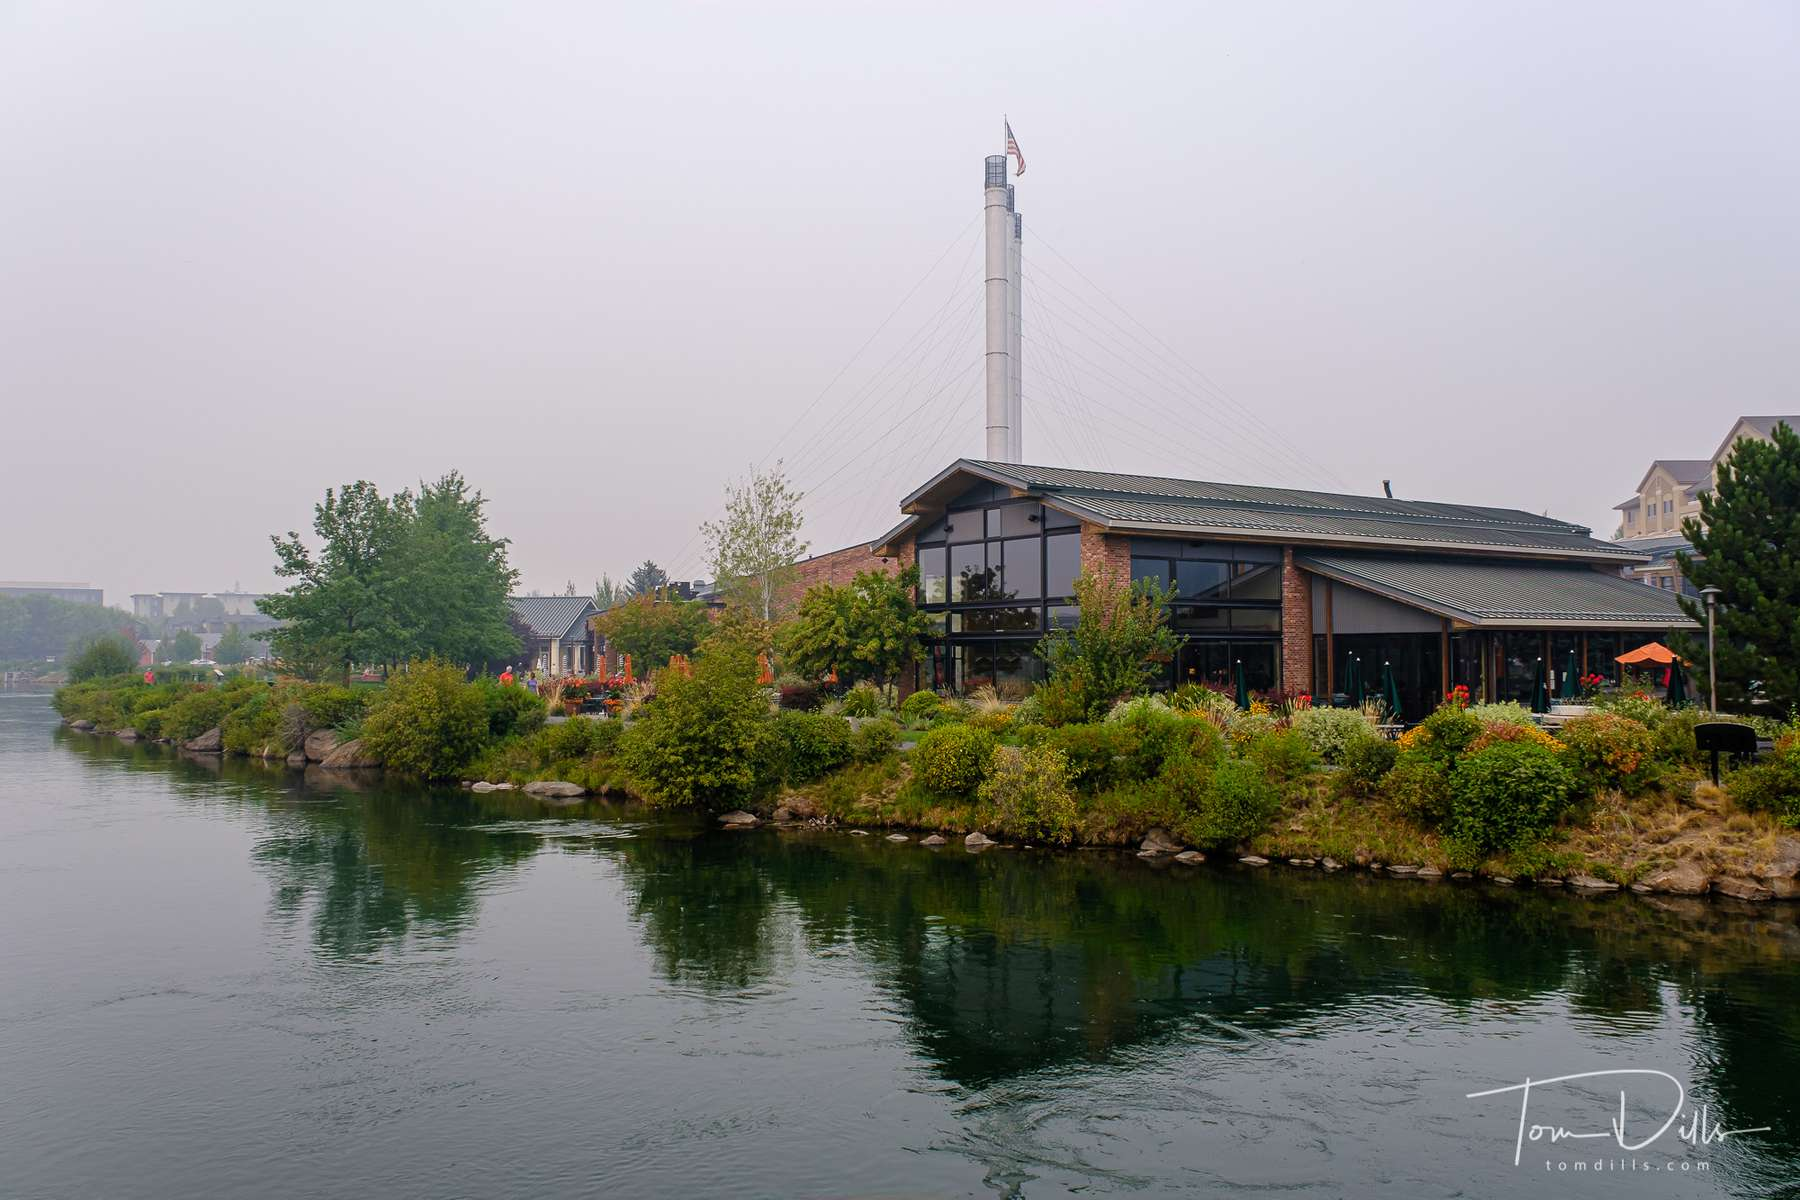 Shops at the Old Mill District along the Deshutes River in Bend, Oregon